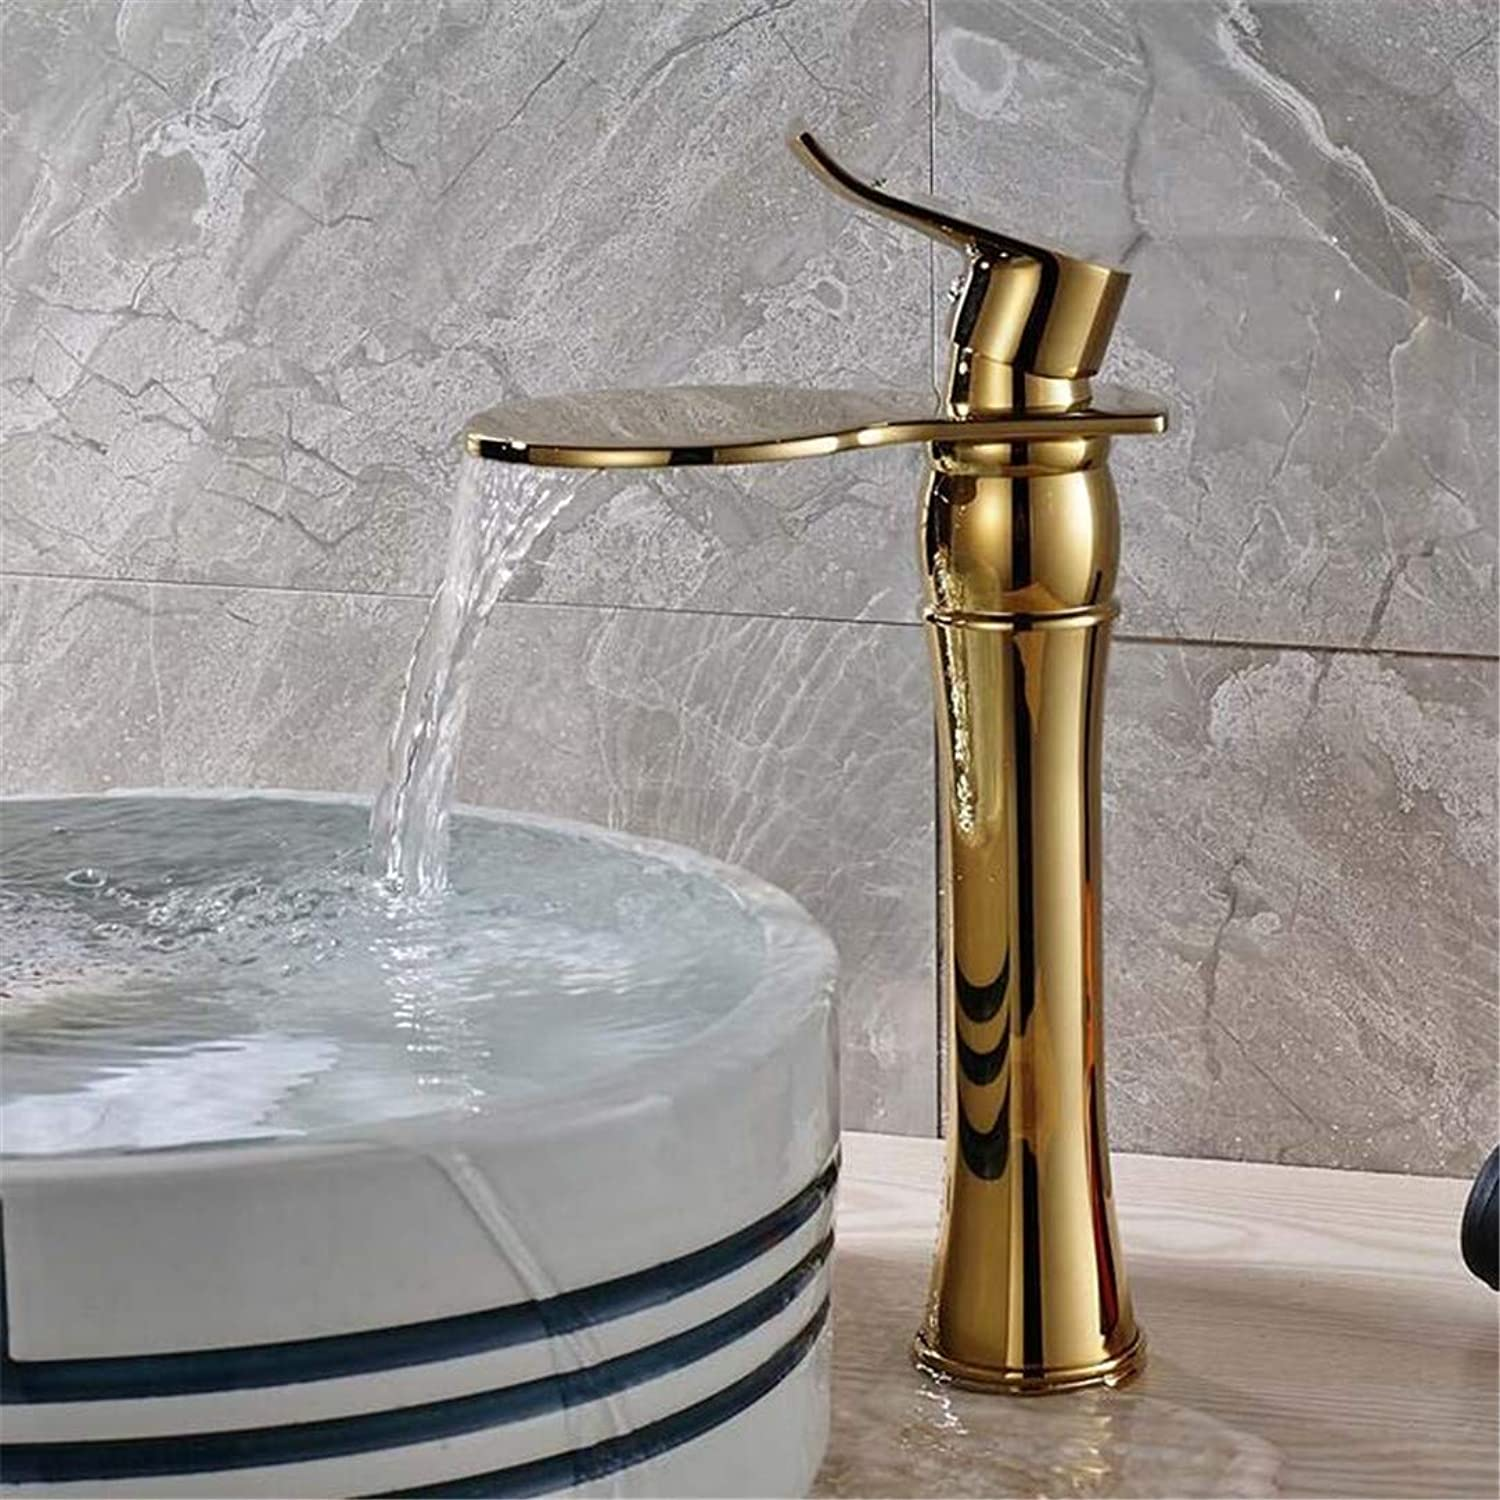 Faucet Washbasin Mixer Classic golden Countertop Basin Faucet One Handle Waterfall Round Water Spout Bathroom Vessel Sink Taps